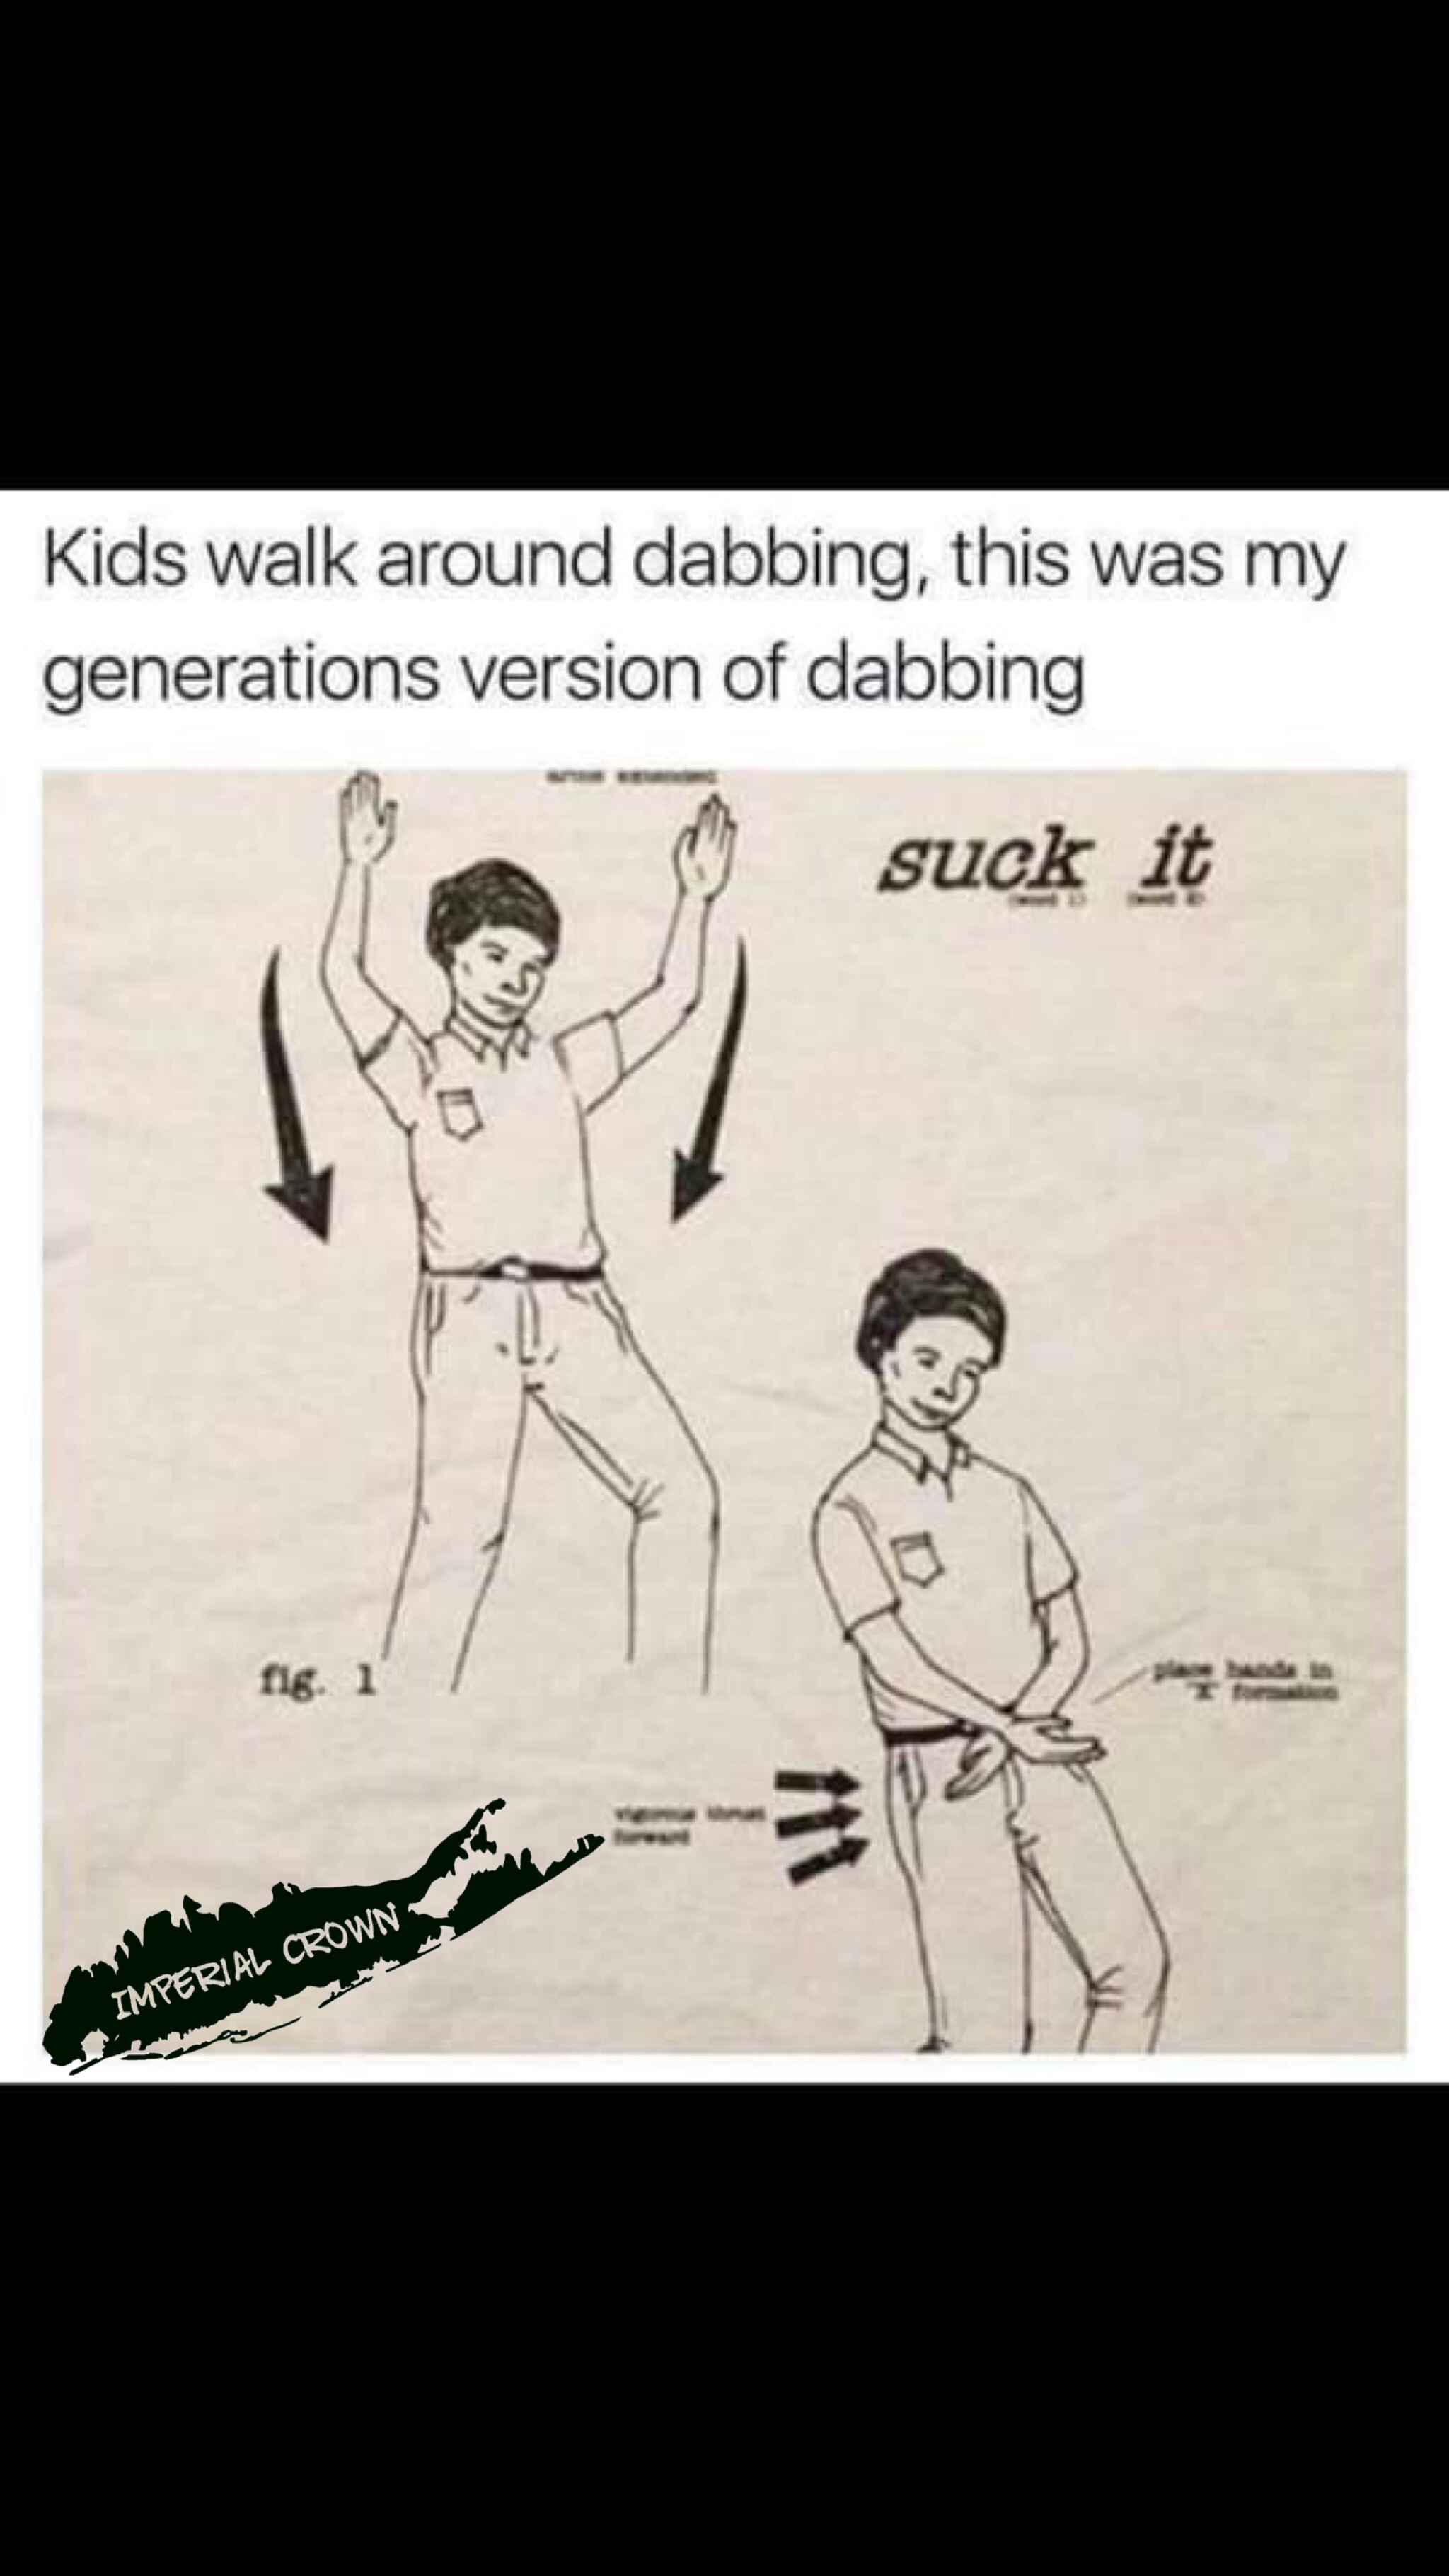 My generation of dabbing was way better